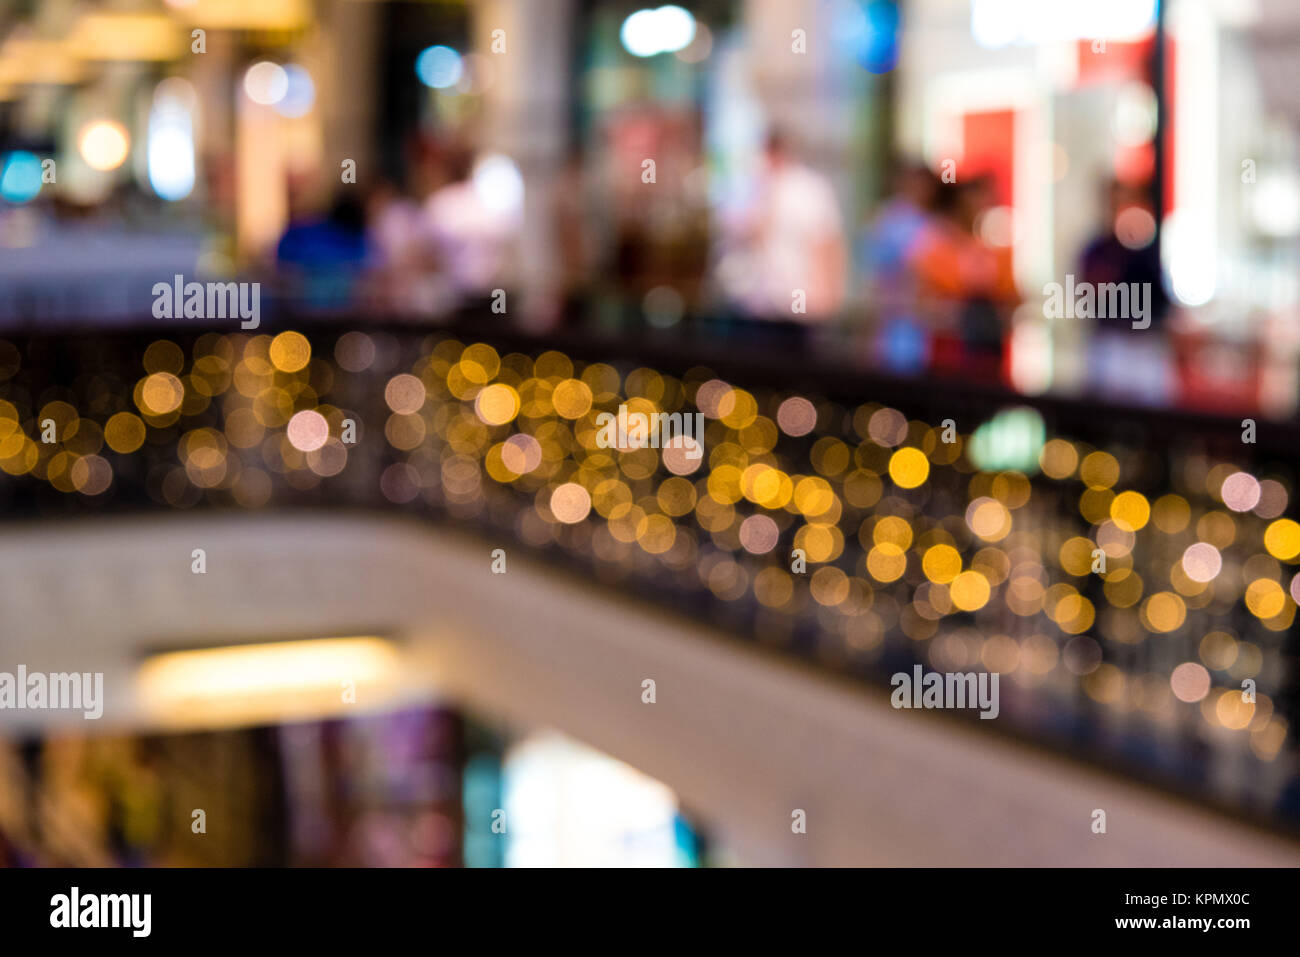 Blurred shopping mall background during winter holidays - Stock Image